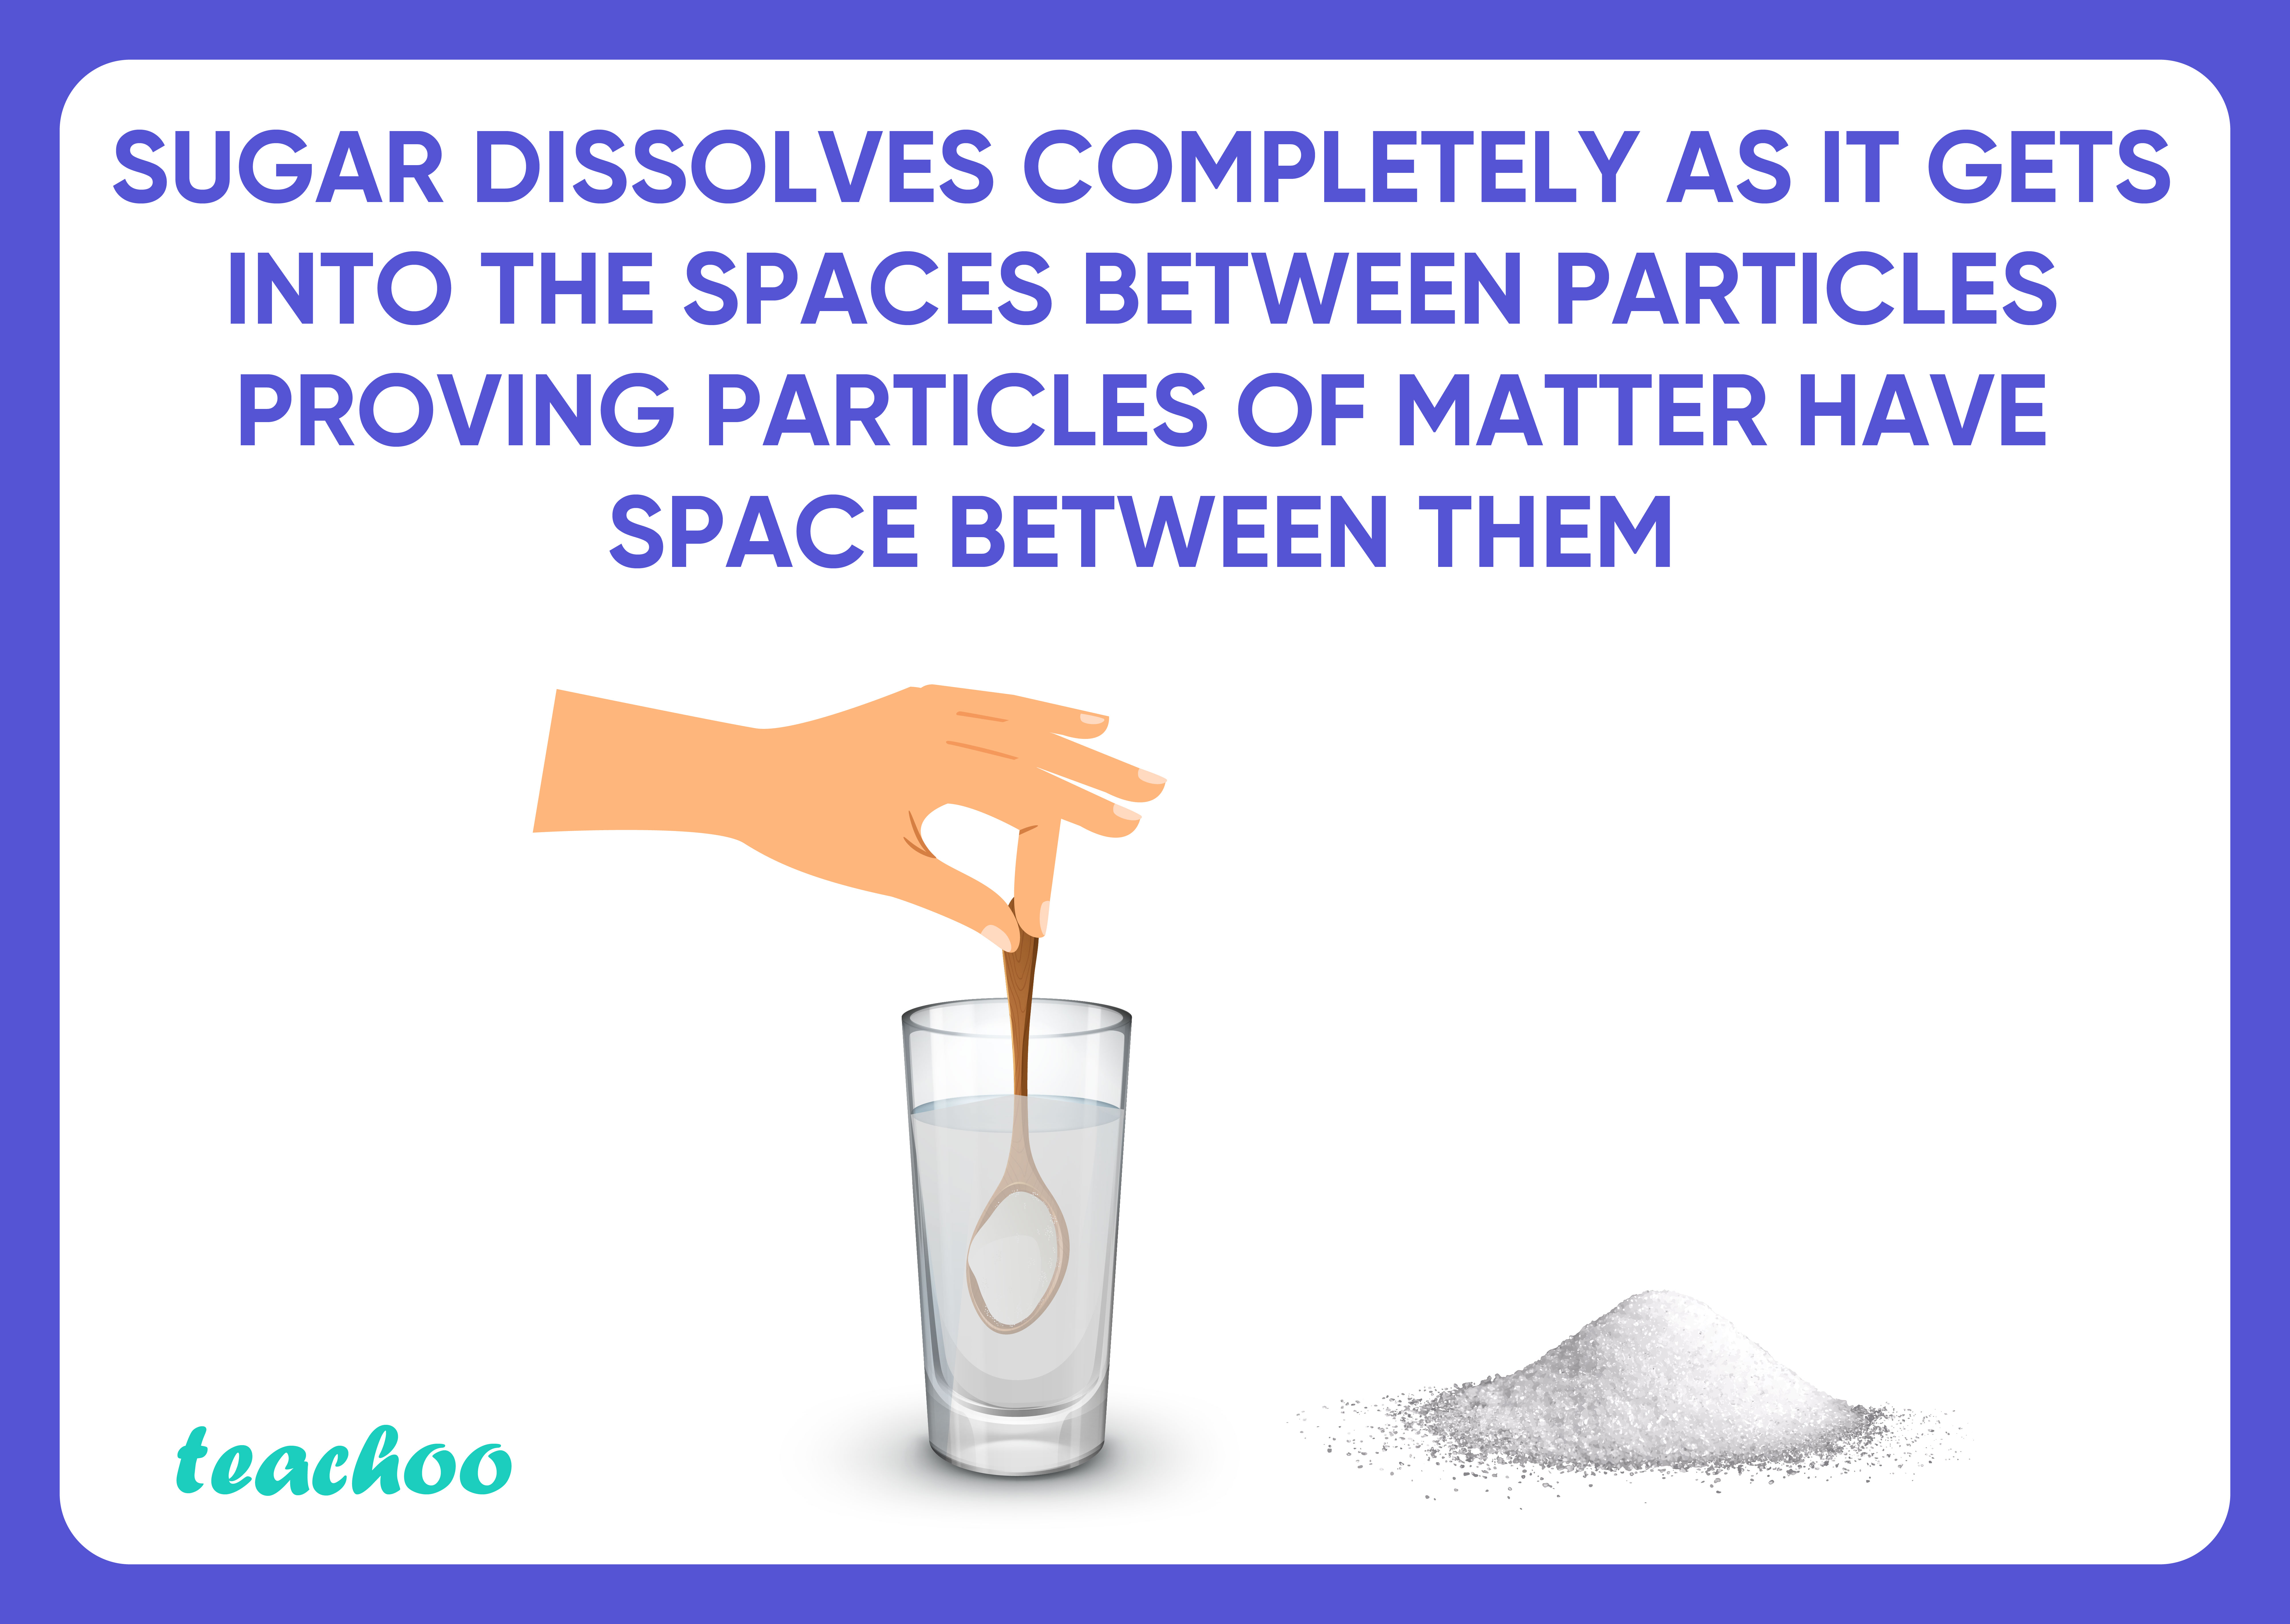 Show Particles of Matter have spaces between them-Teachoo-01.jpg